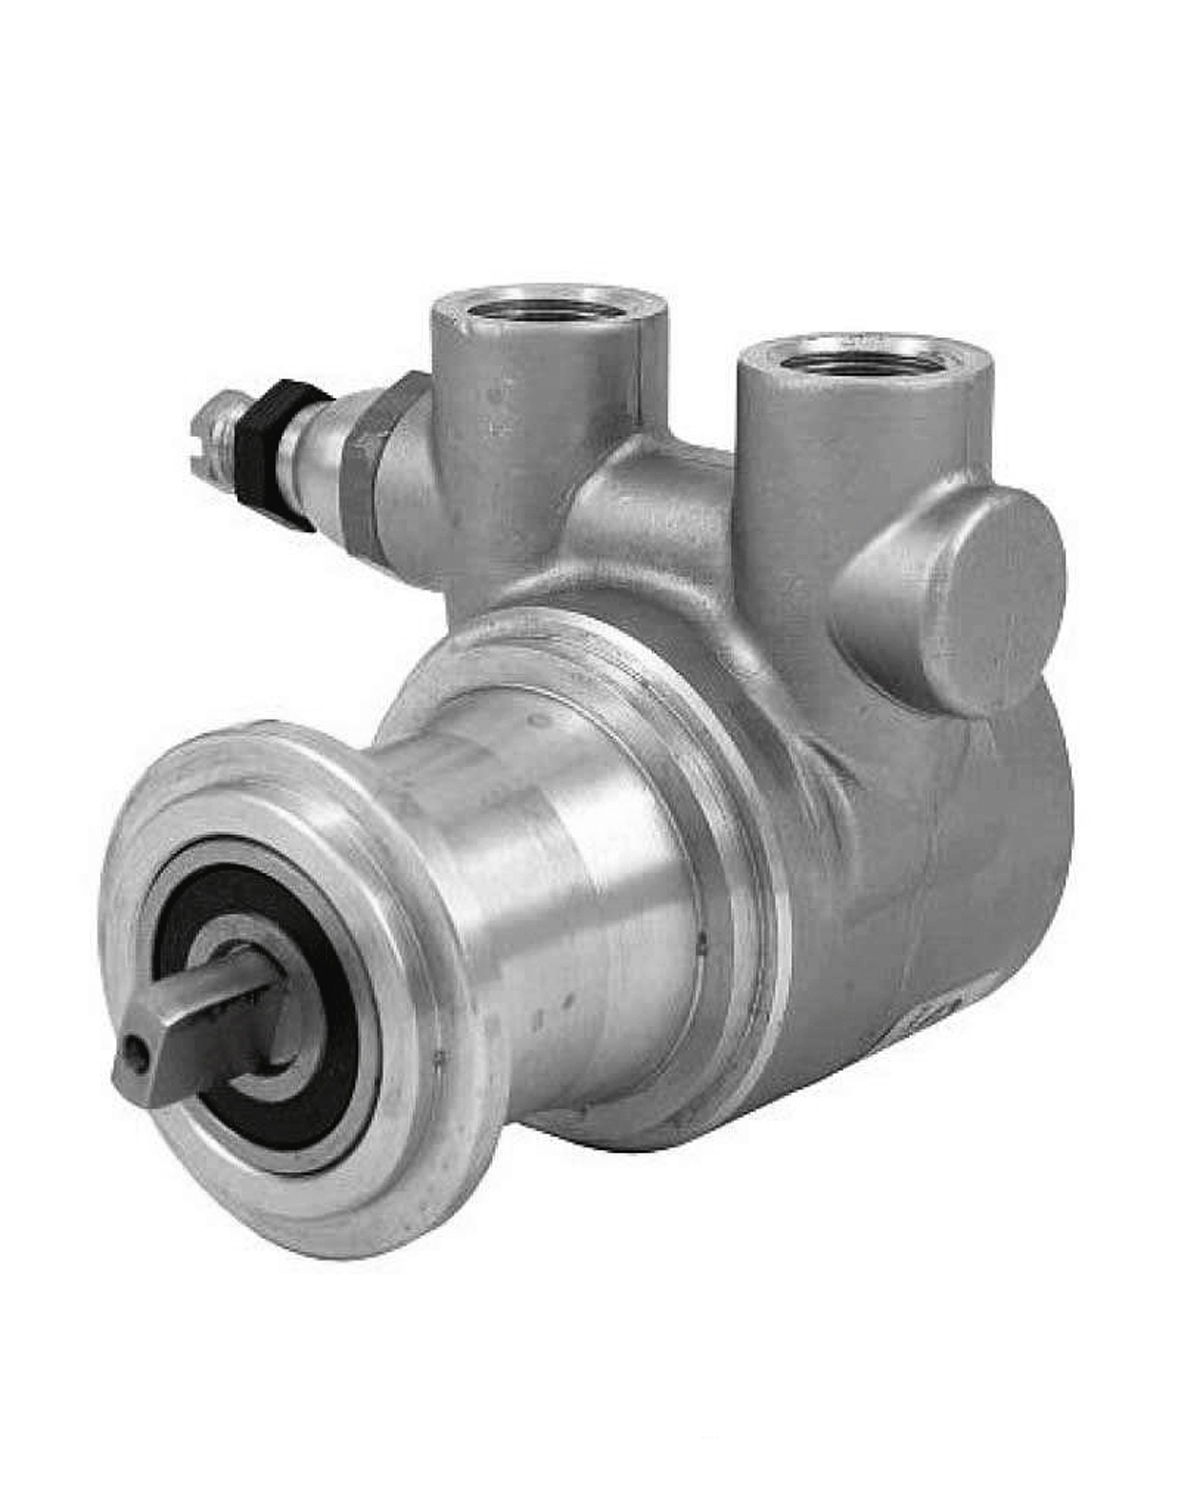 Rotary vane pump for food industry use